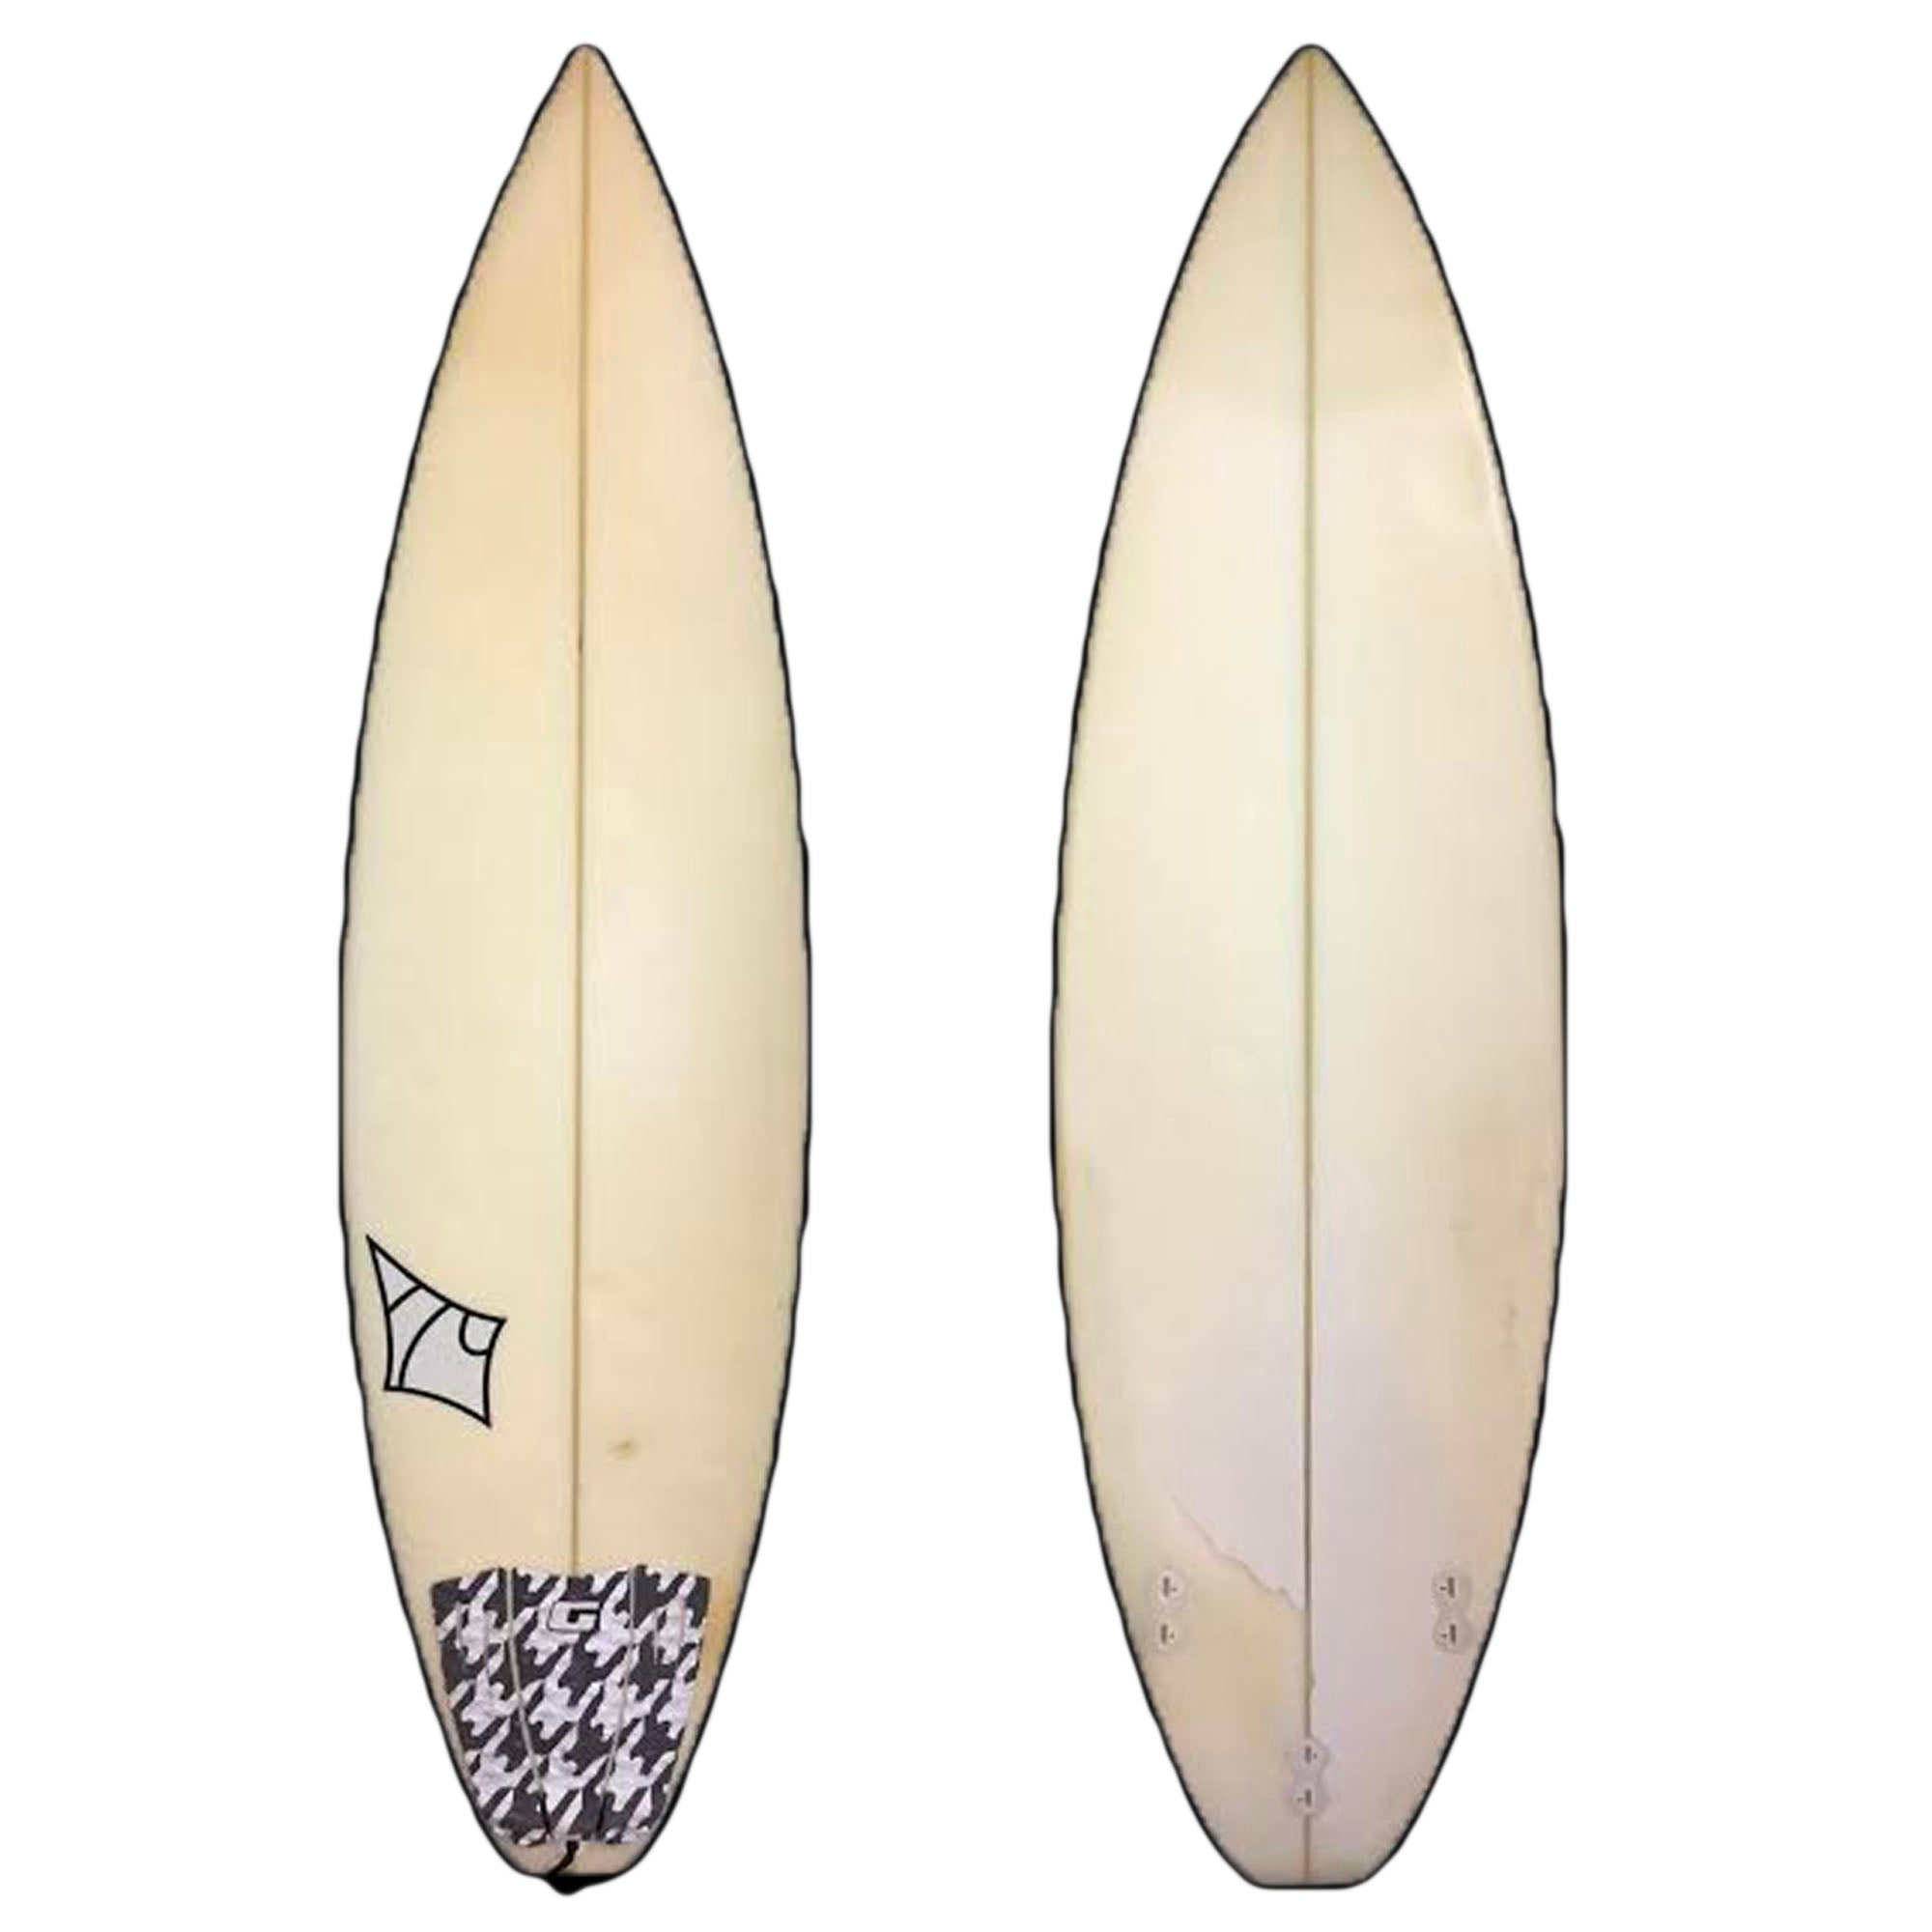 Dominion 5'11 Used Surfboard